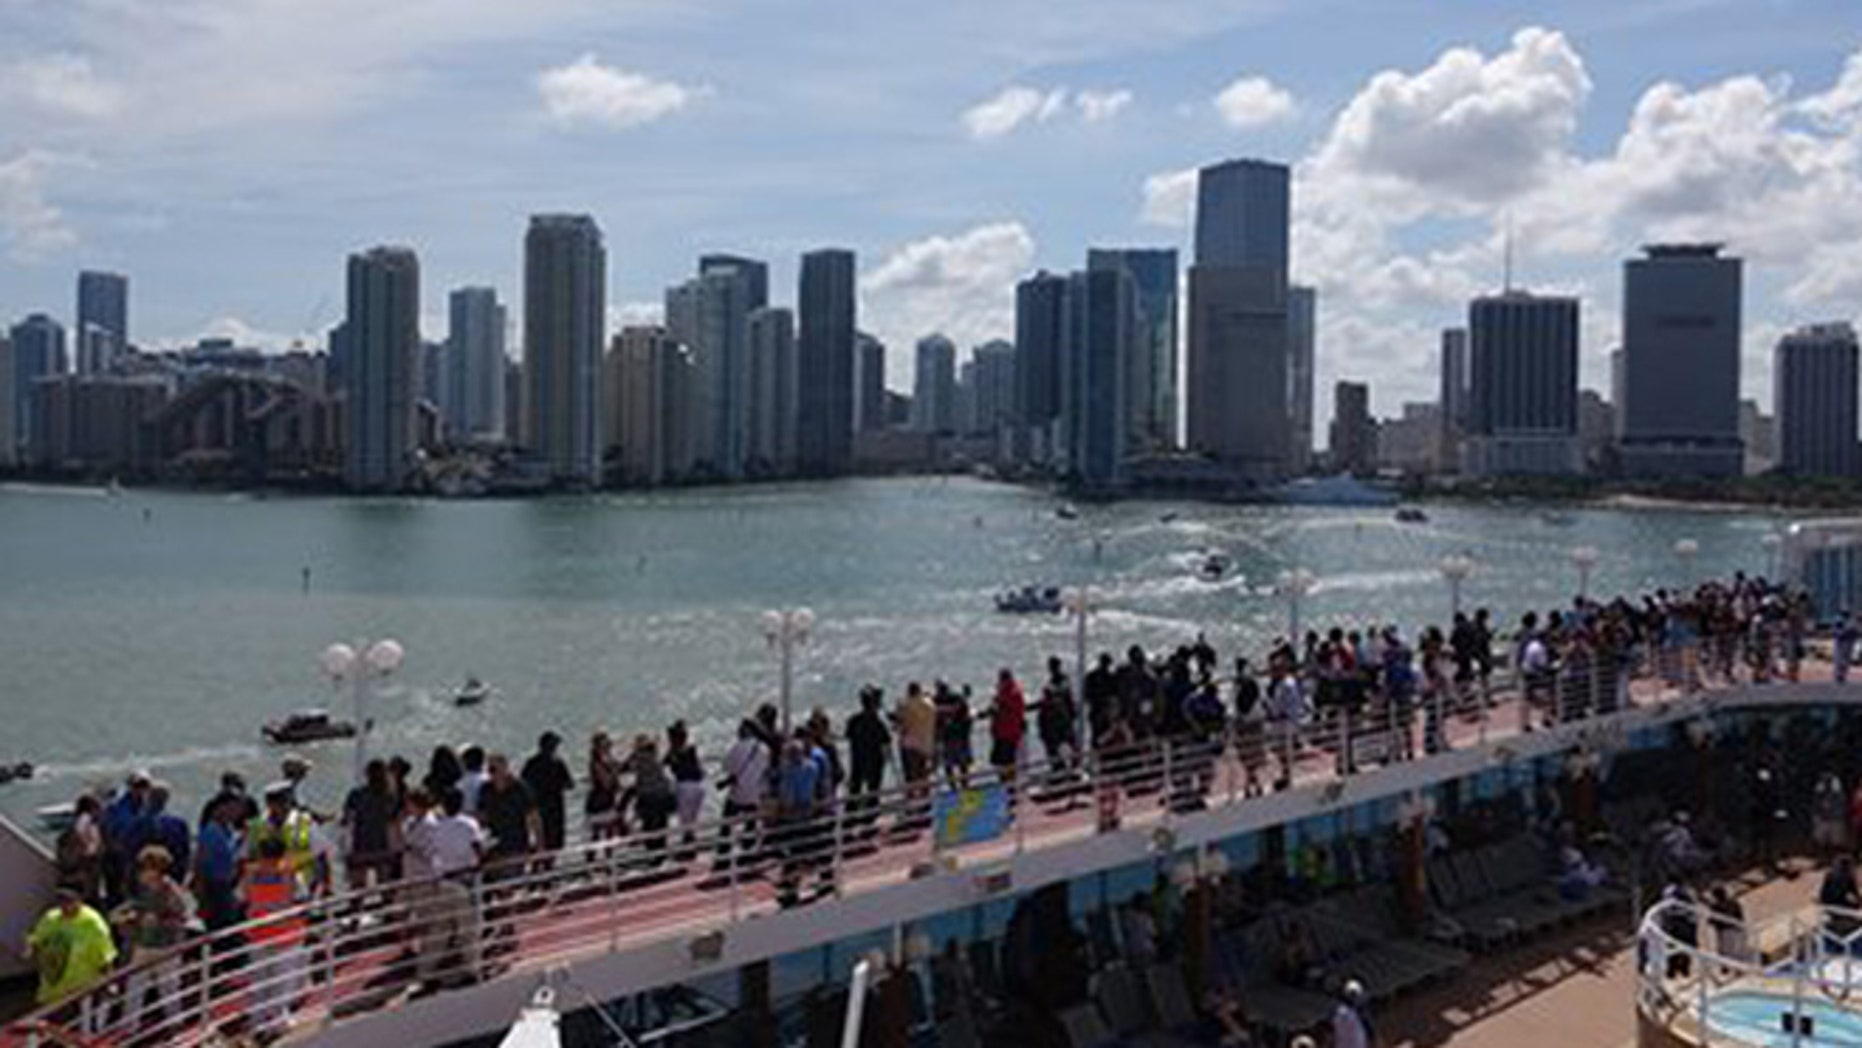 Passengers on board the Adonia watch as the ship leaves port in Miami, Sunday, May 1, 2016, en route to Cuba. After a half-century of waiting, passengers finally set sail on Sunday from Miami on an historic cruise to Cuba.  (Joe Cavaretta/South Florida Sun-Sentinel via AP)